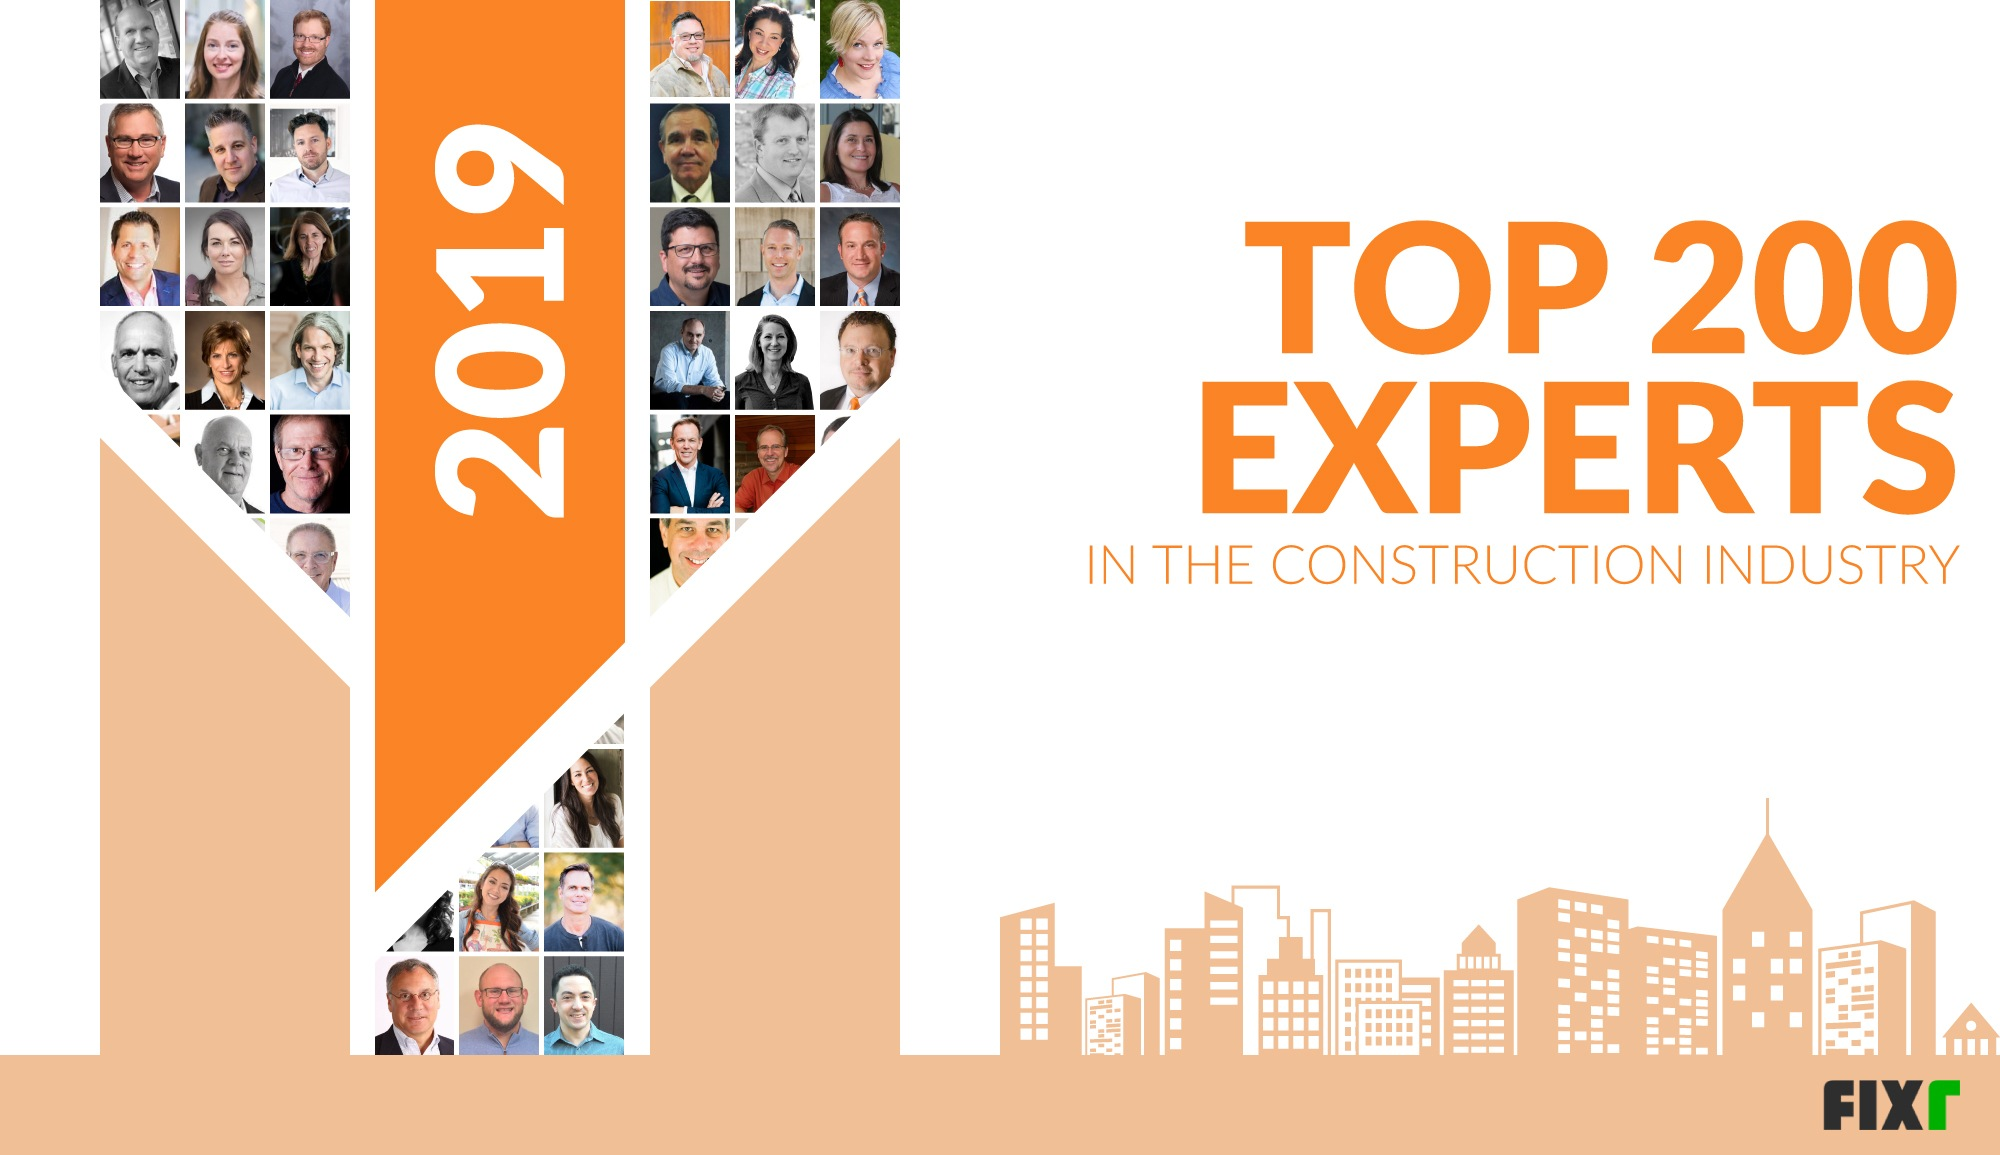 Top 200 Experts in the Construction Industry 2019